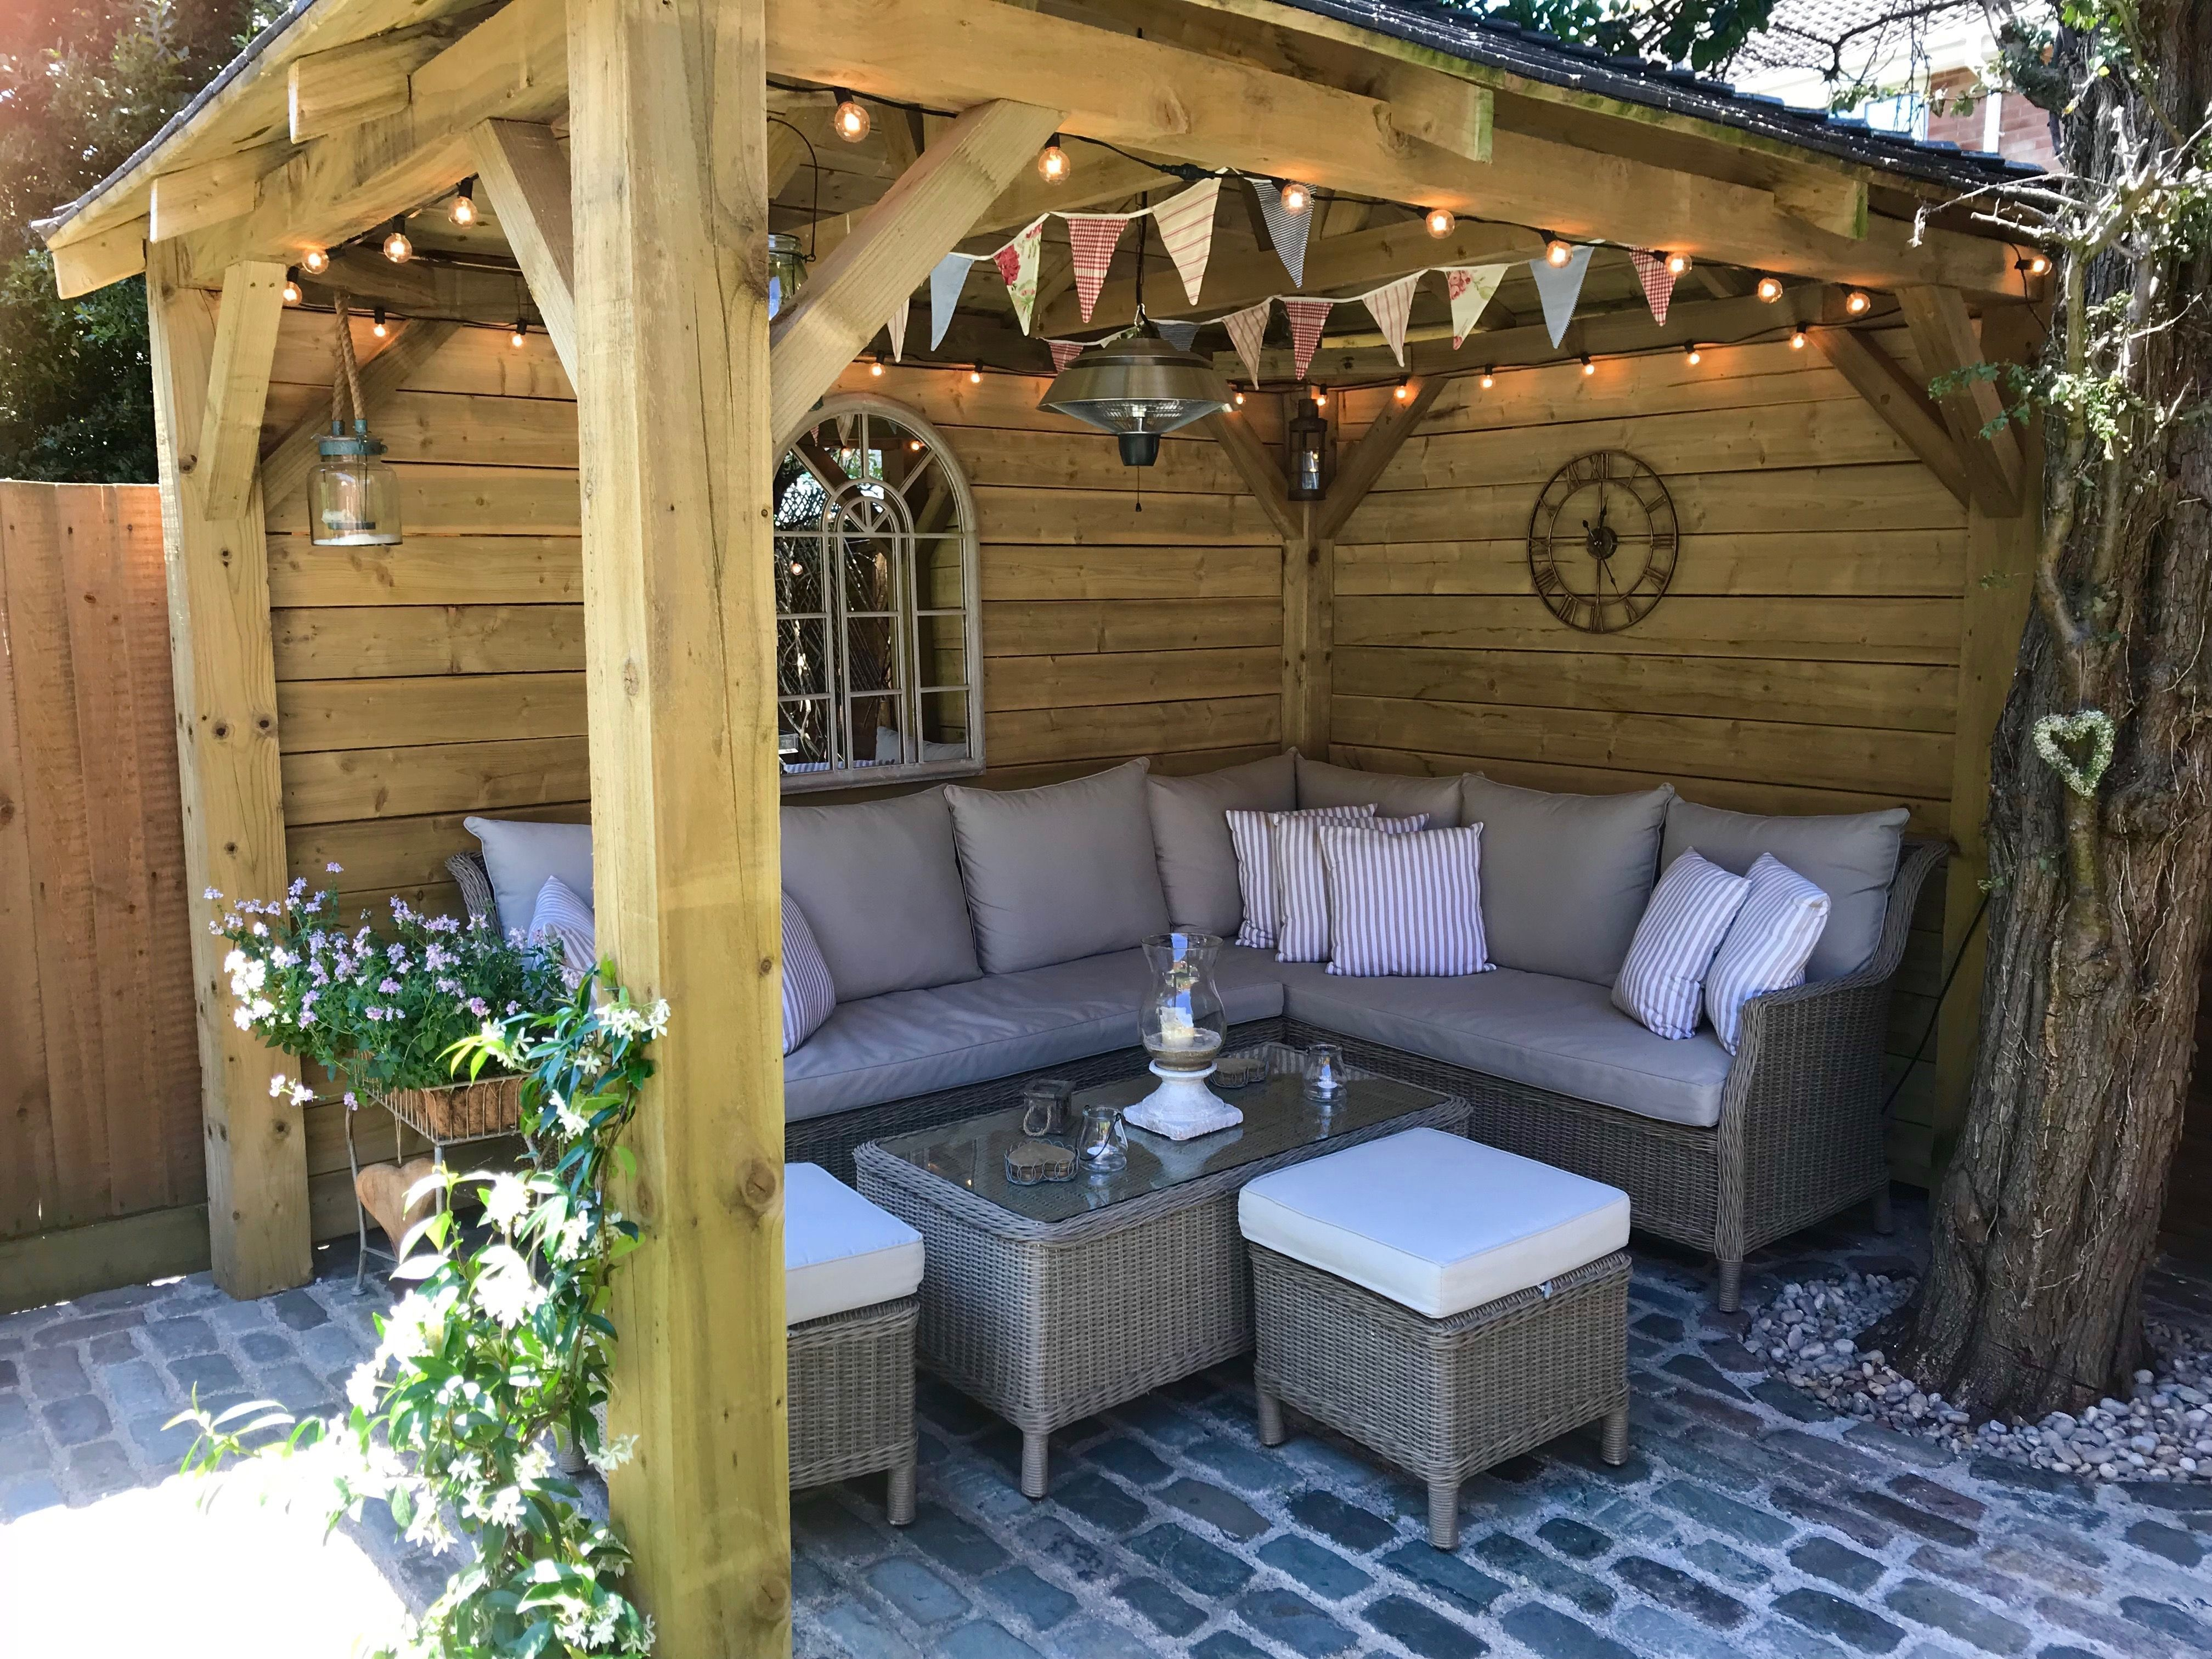 Cottage Garden Gazebo Homemade Bunting Outdoor Seating Outdoor Lighting Cobbles Eclecticandrusti Garden Seating Area Outdoor Seating Areas Garden Seating